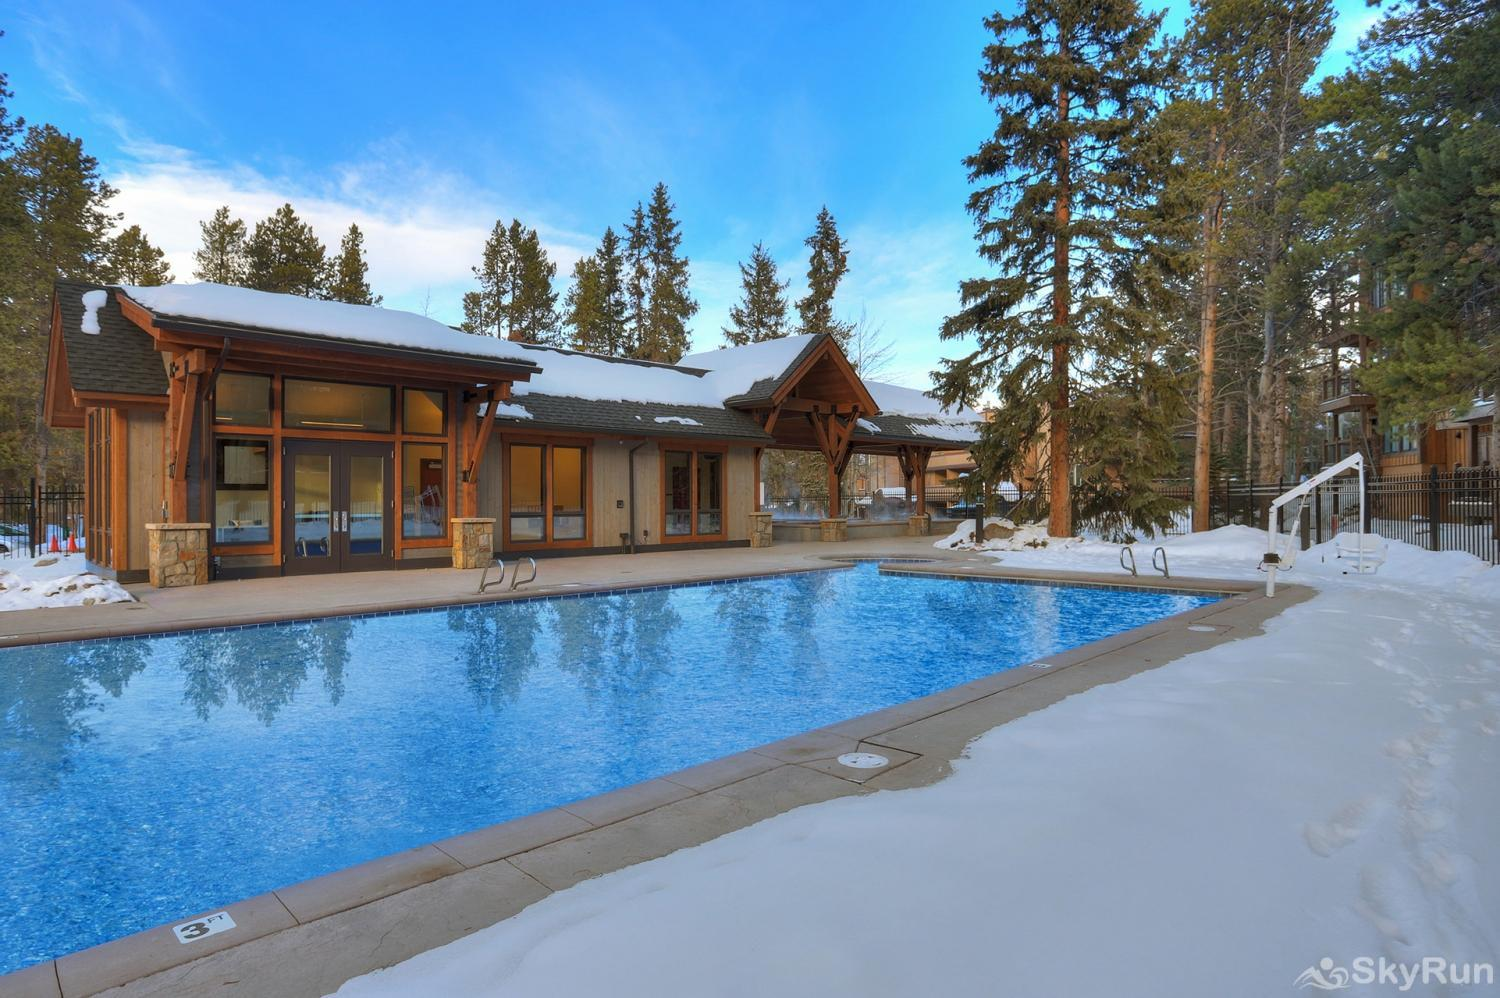 Inner Circle 3 Relax and unwind in the outdoor heated pool & hot tubs